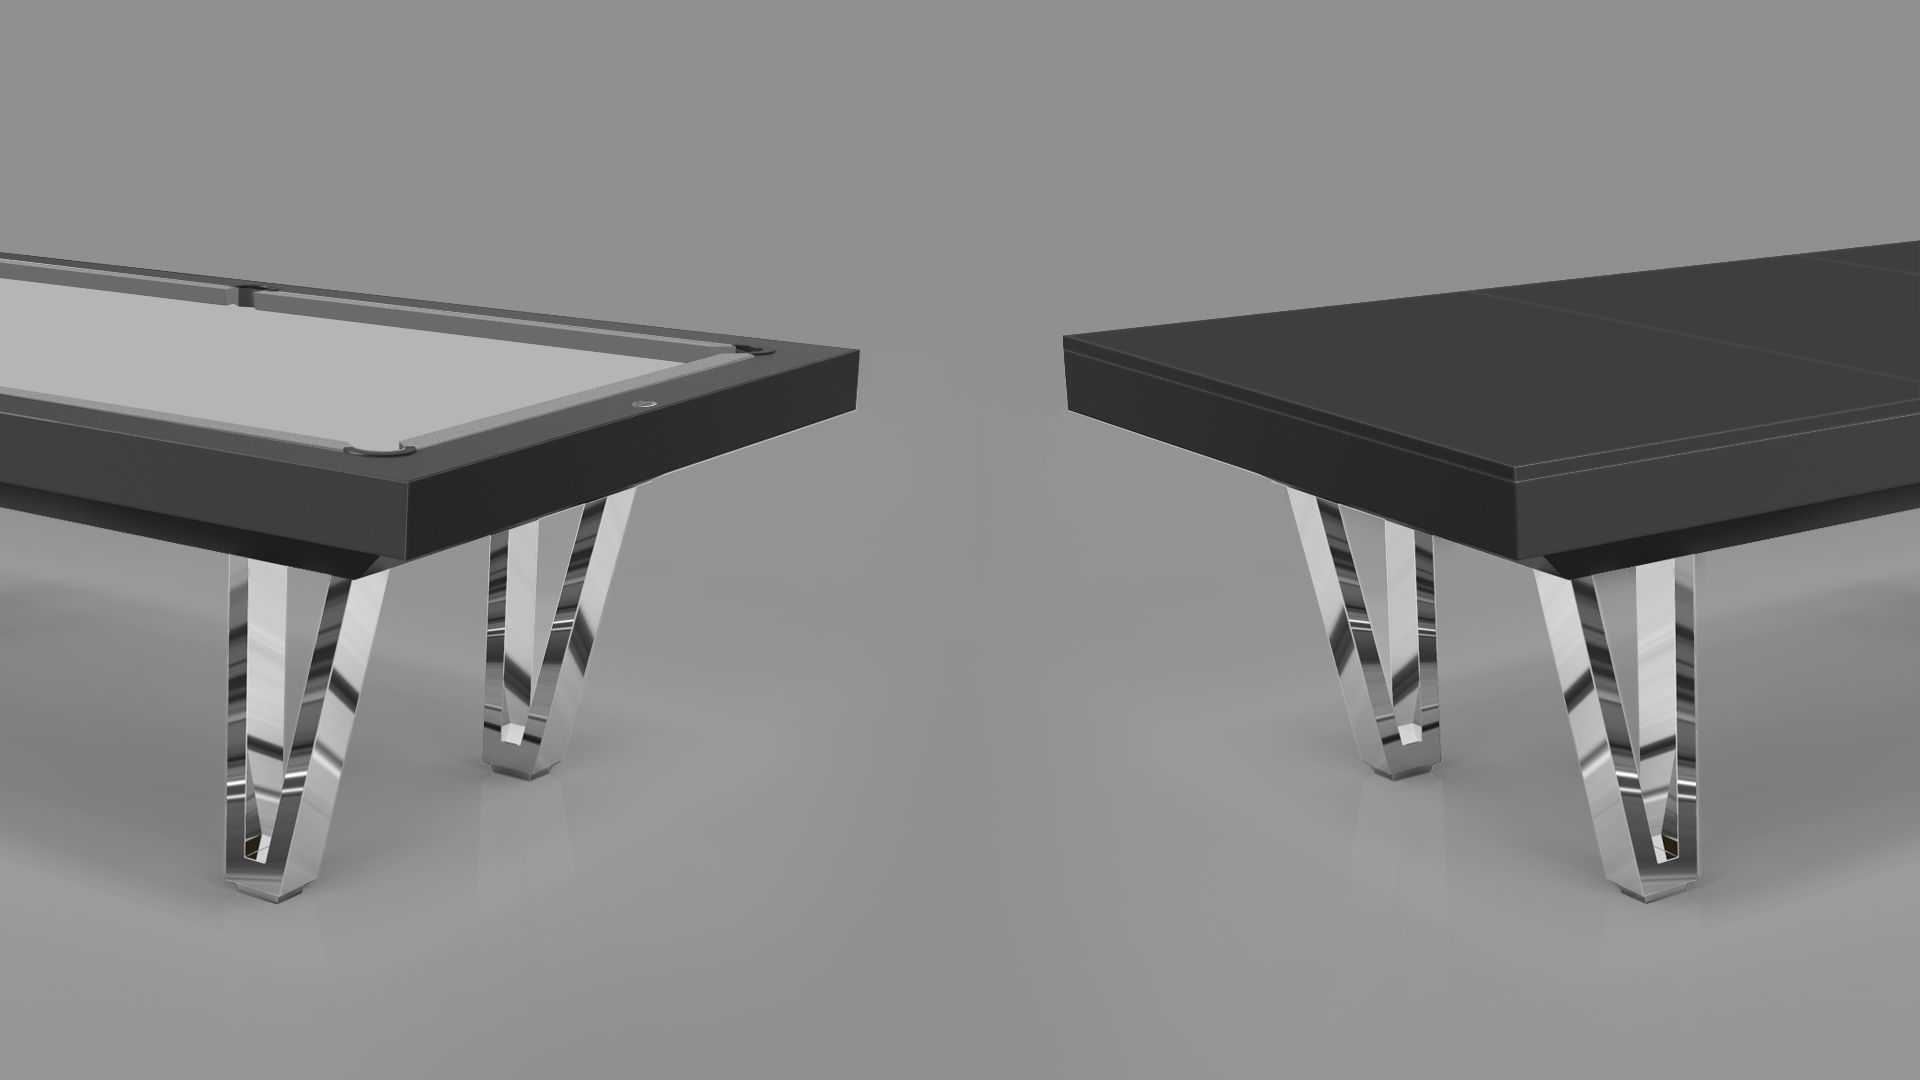 Pool Table mod. Cayenne Two Lacquered metal bases 7